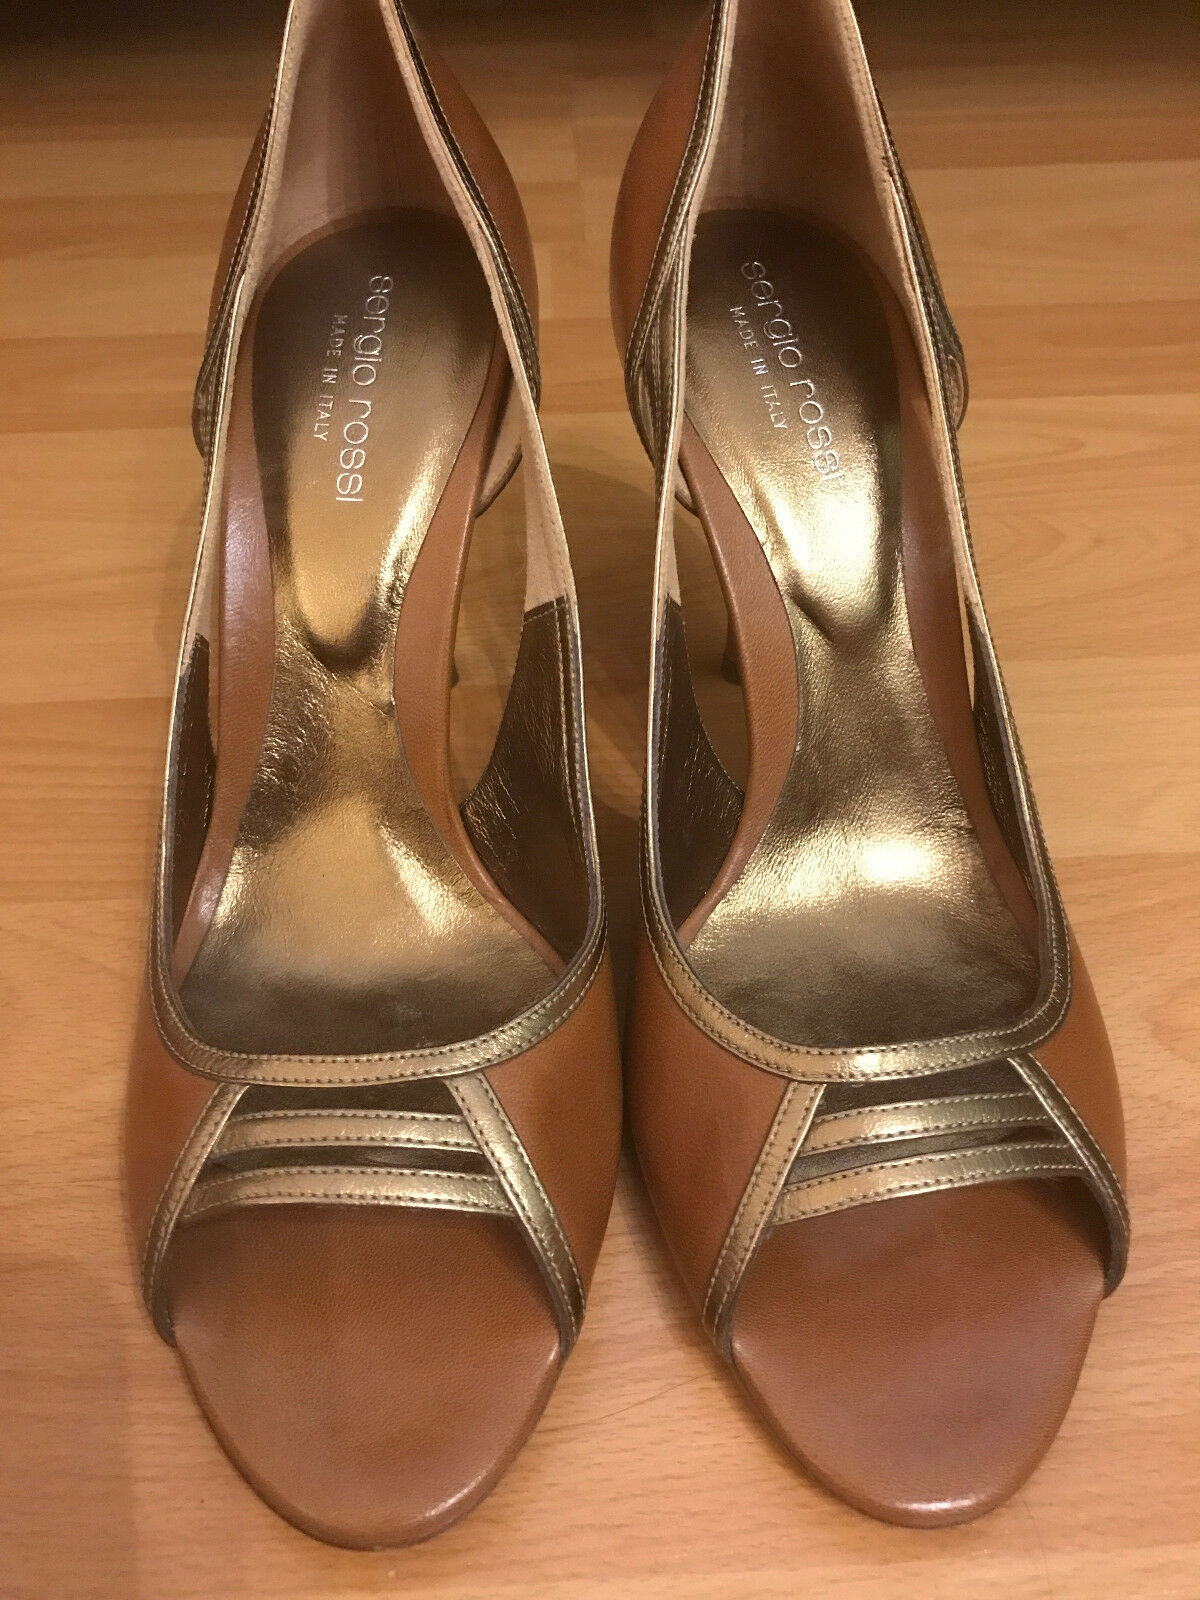 SERGIO ROSSI Womens Leather Authentic Shoes Heels size 38 MONSICH